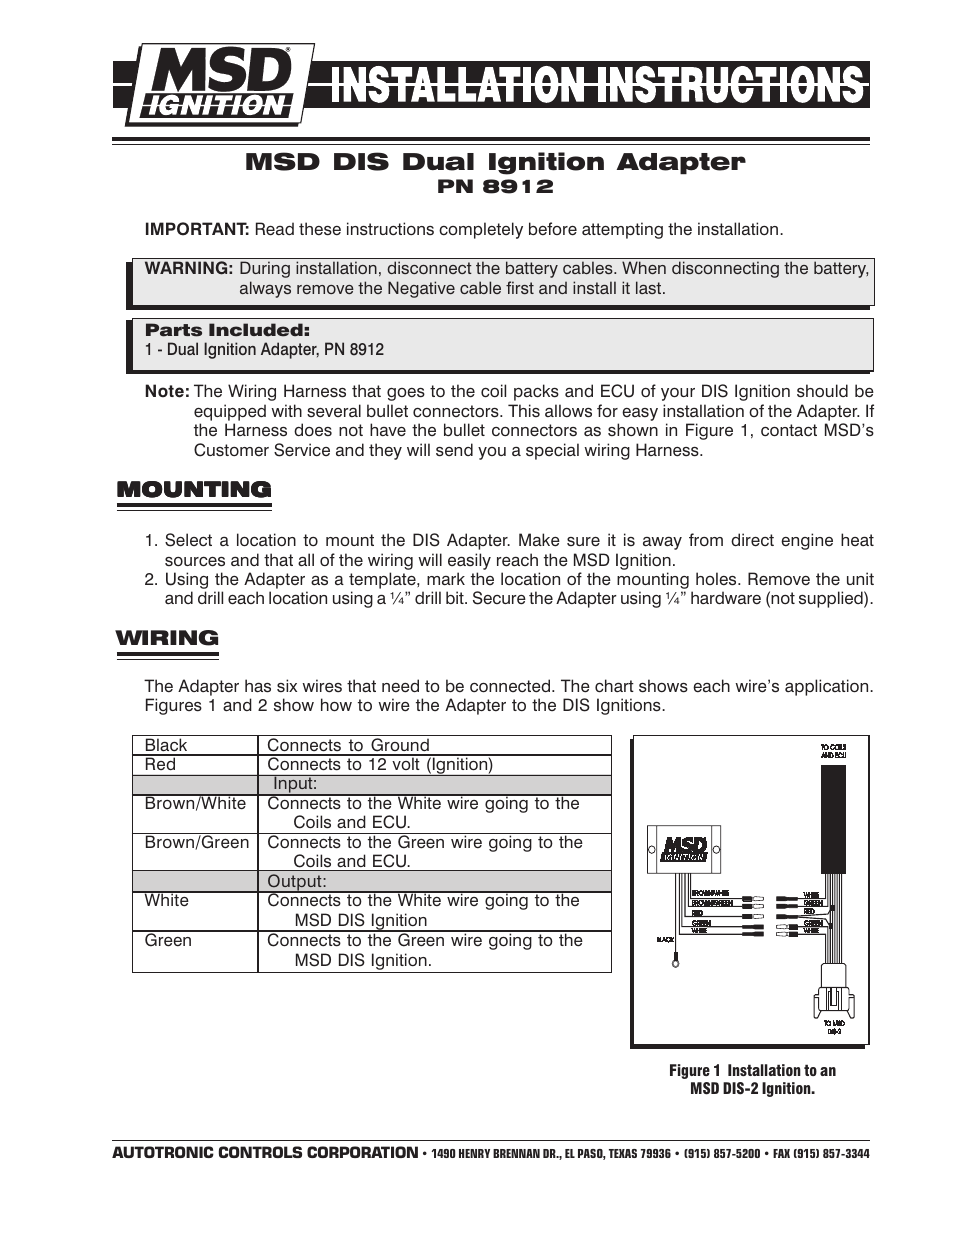 medium resolution of msd 8912 tach adapter for dis 2 and dis 4 ignitions installation user manual 2 pages